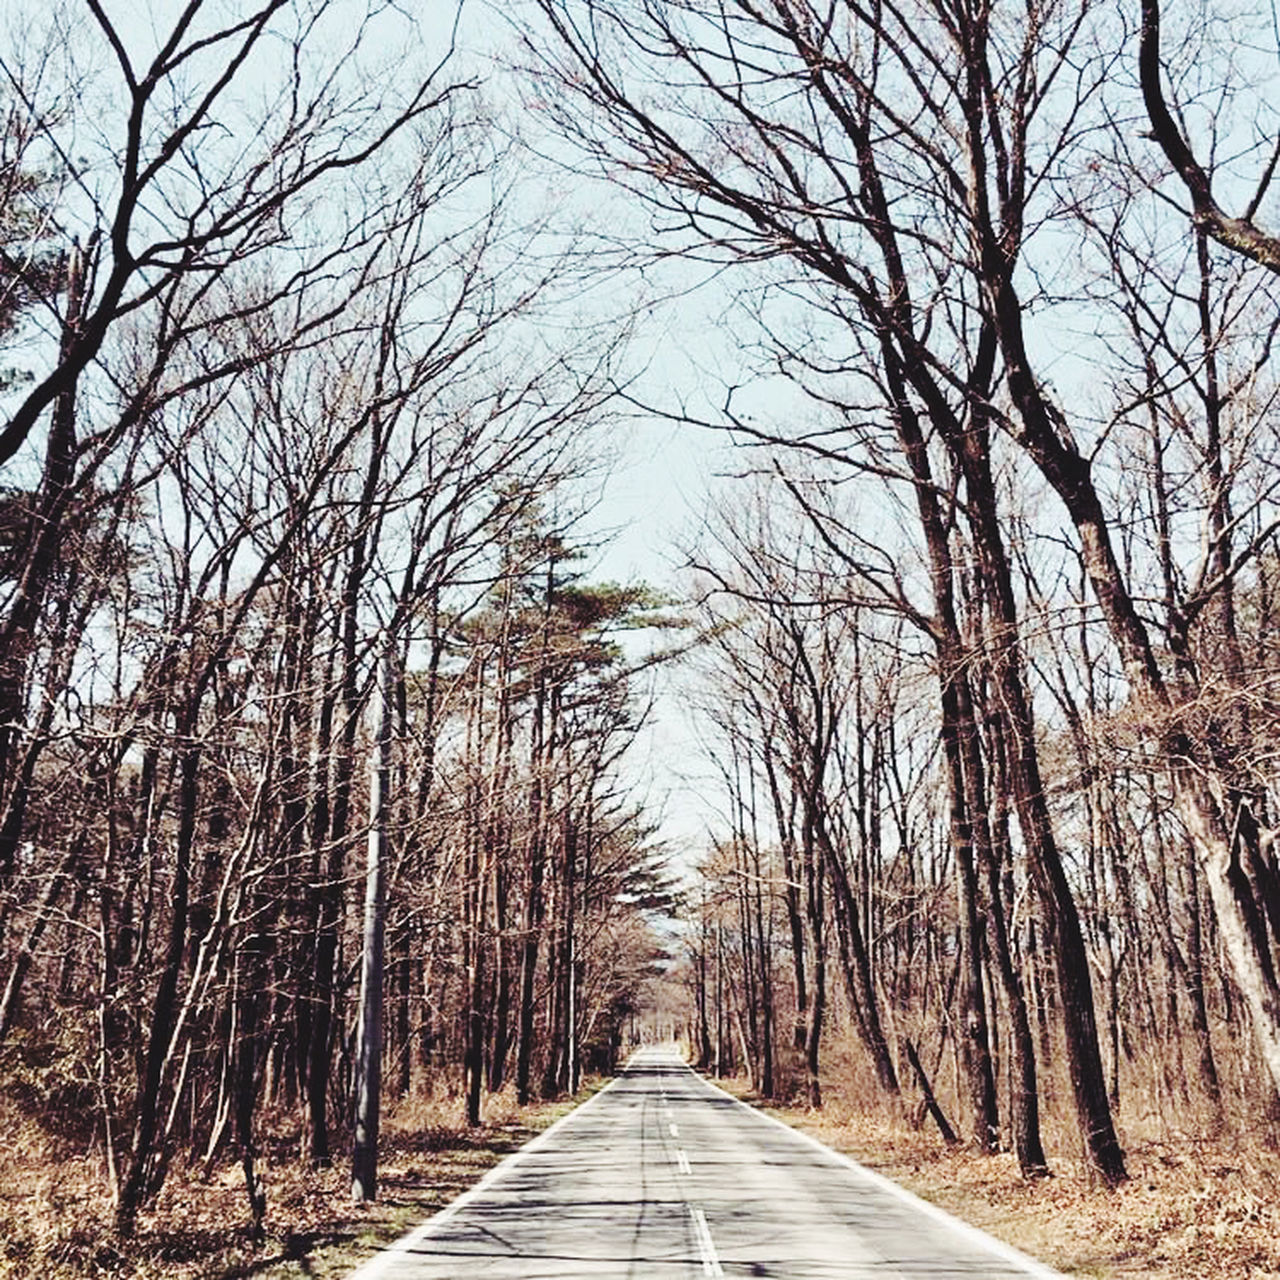 EMPTY ROAD ALONG BARE TREES AND PLANTS